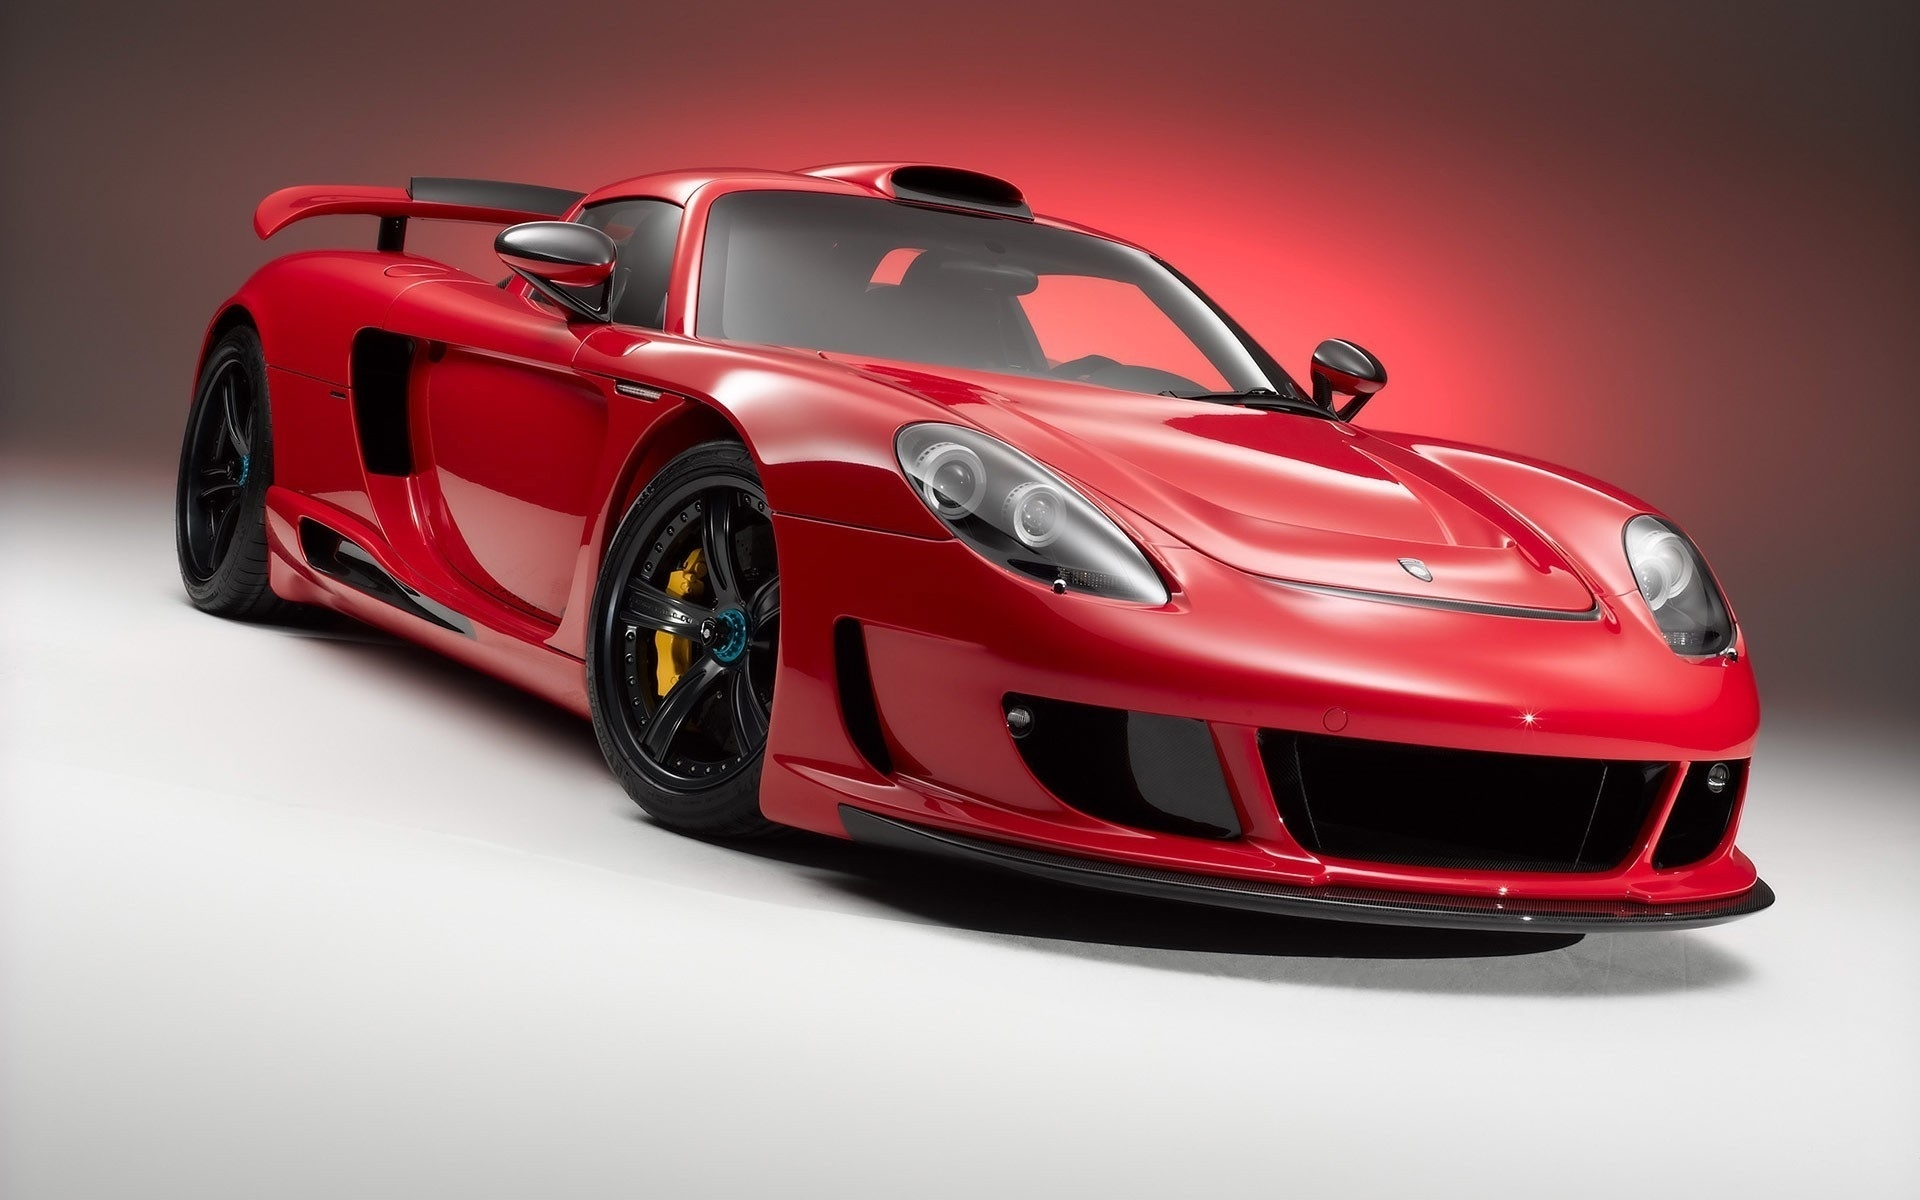 28660 download wallpaper Transport, Auto, Ferrari screensavers and pictures for free